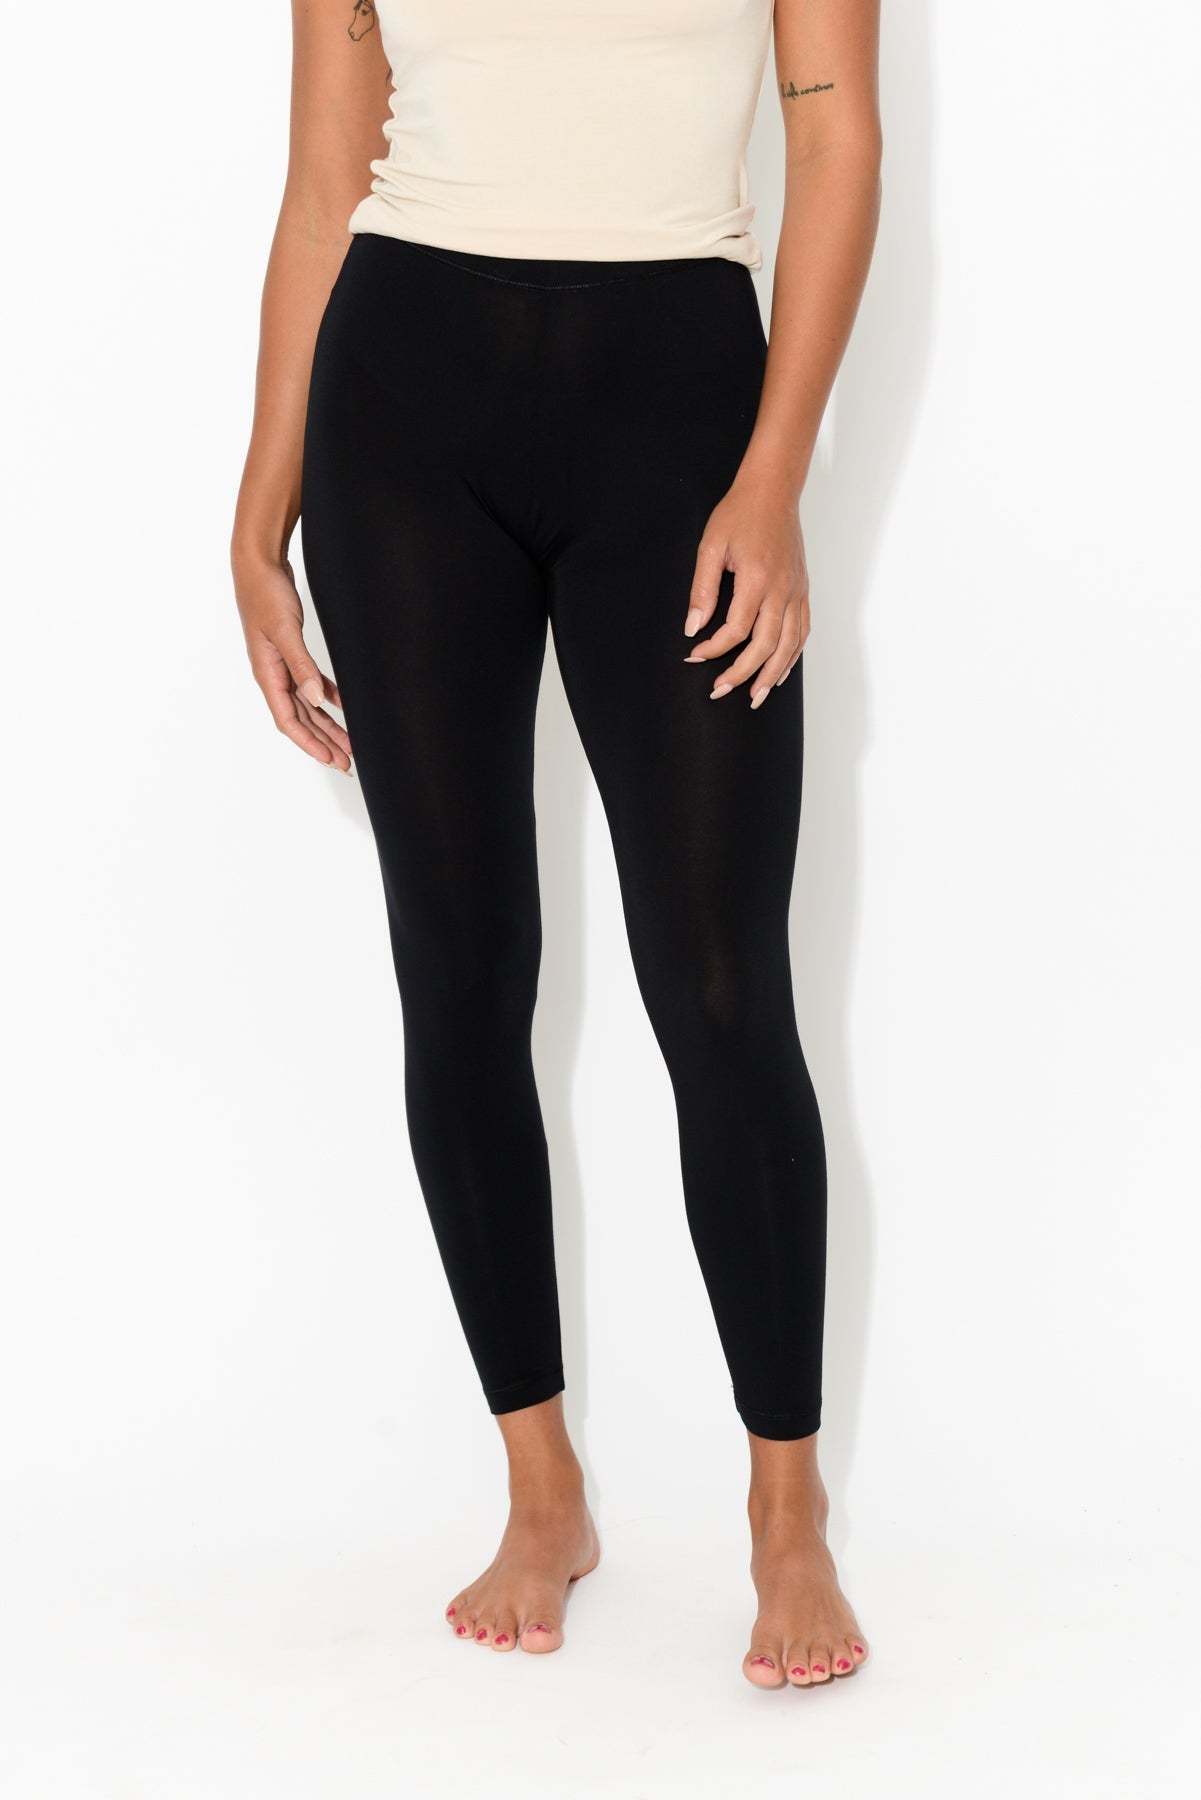 Black Modal 7/8 Legging